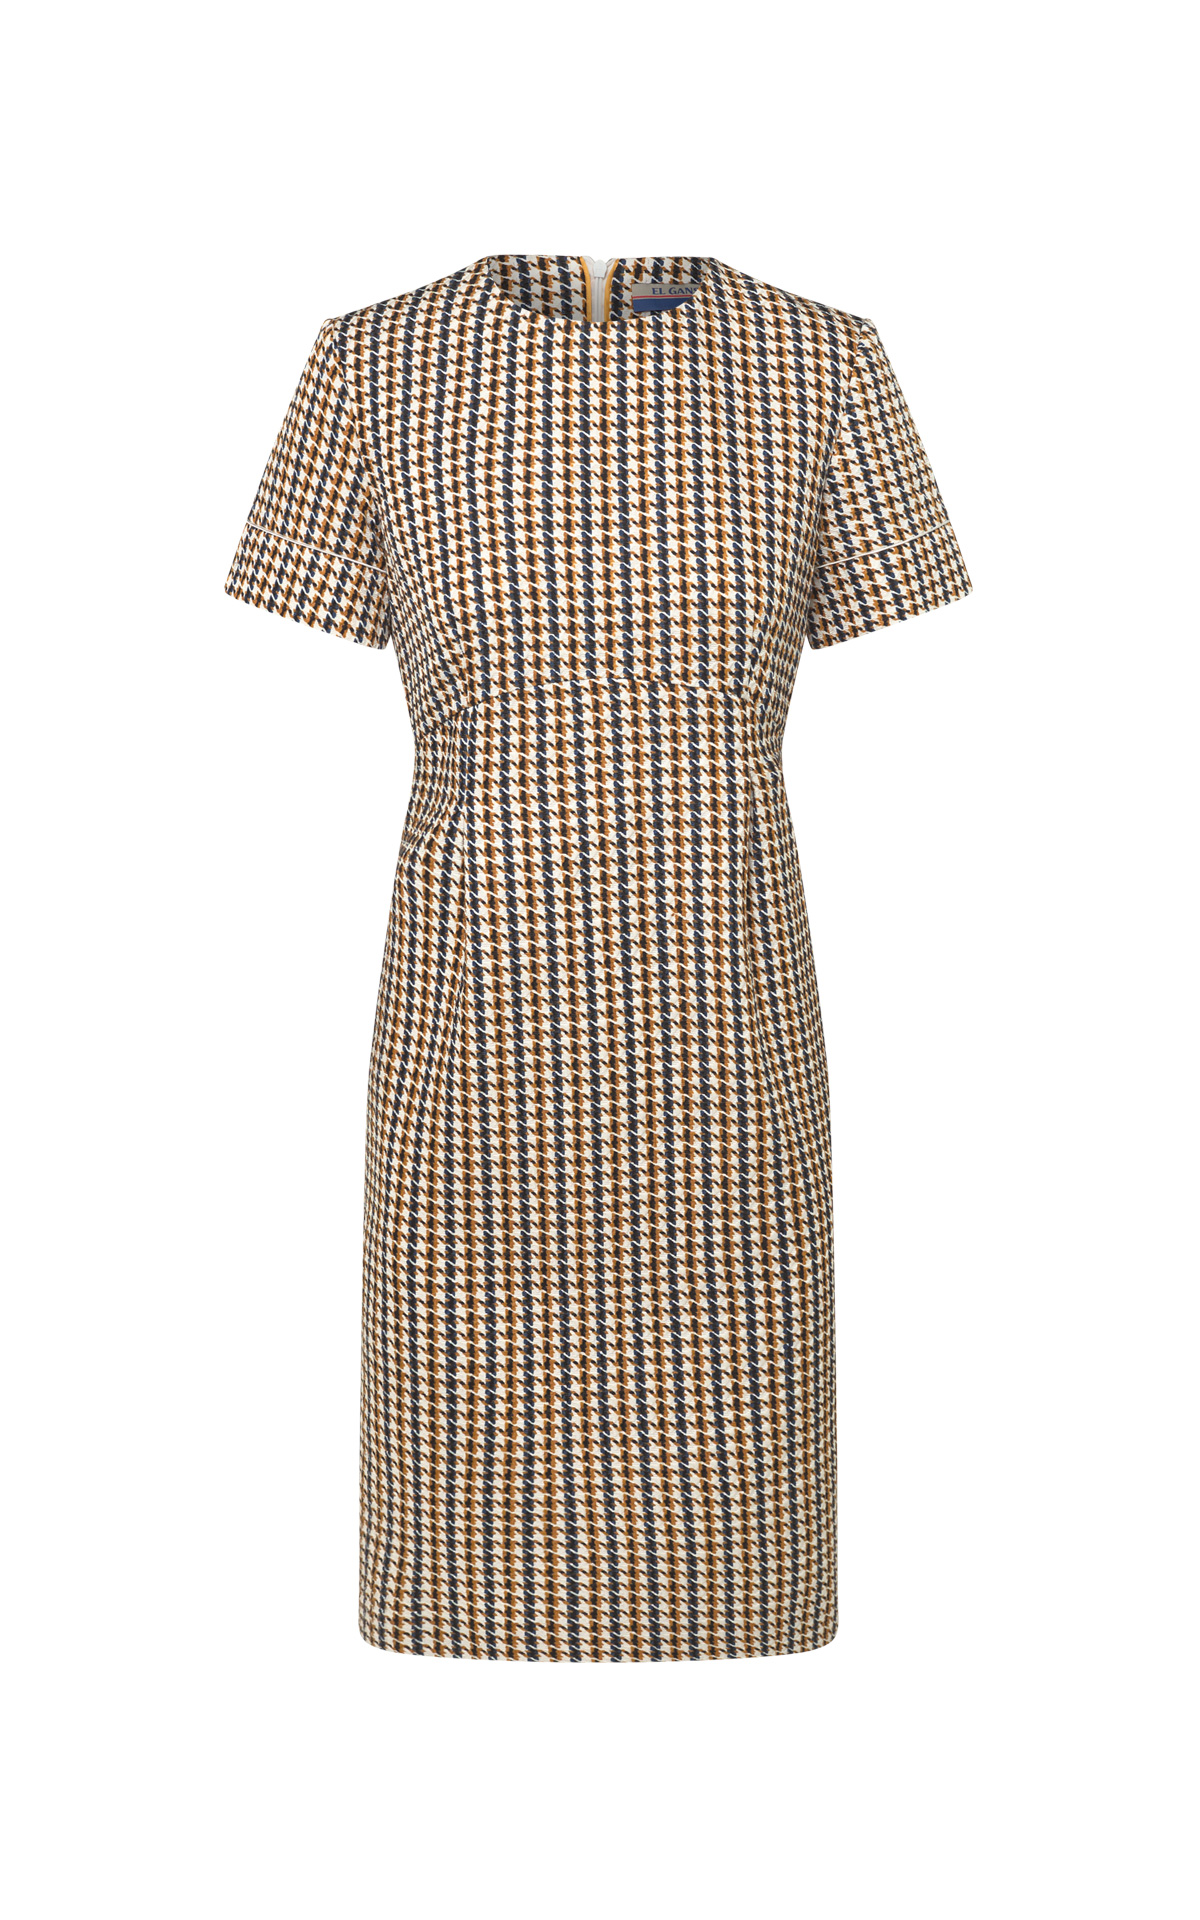 Houndstooth dress from El Ganso